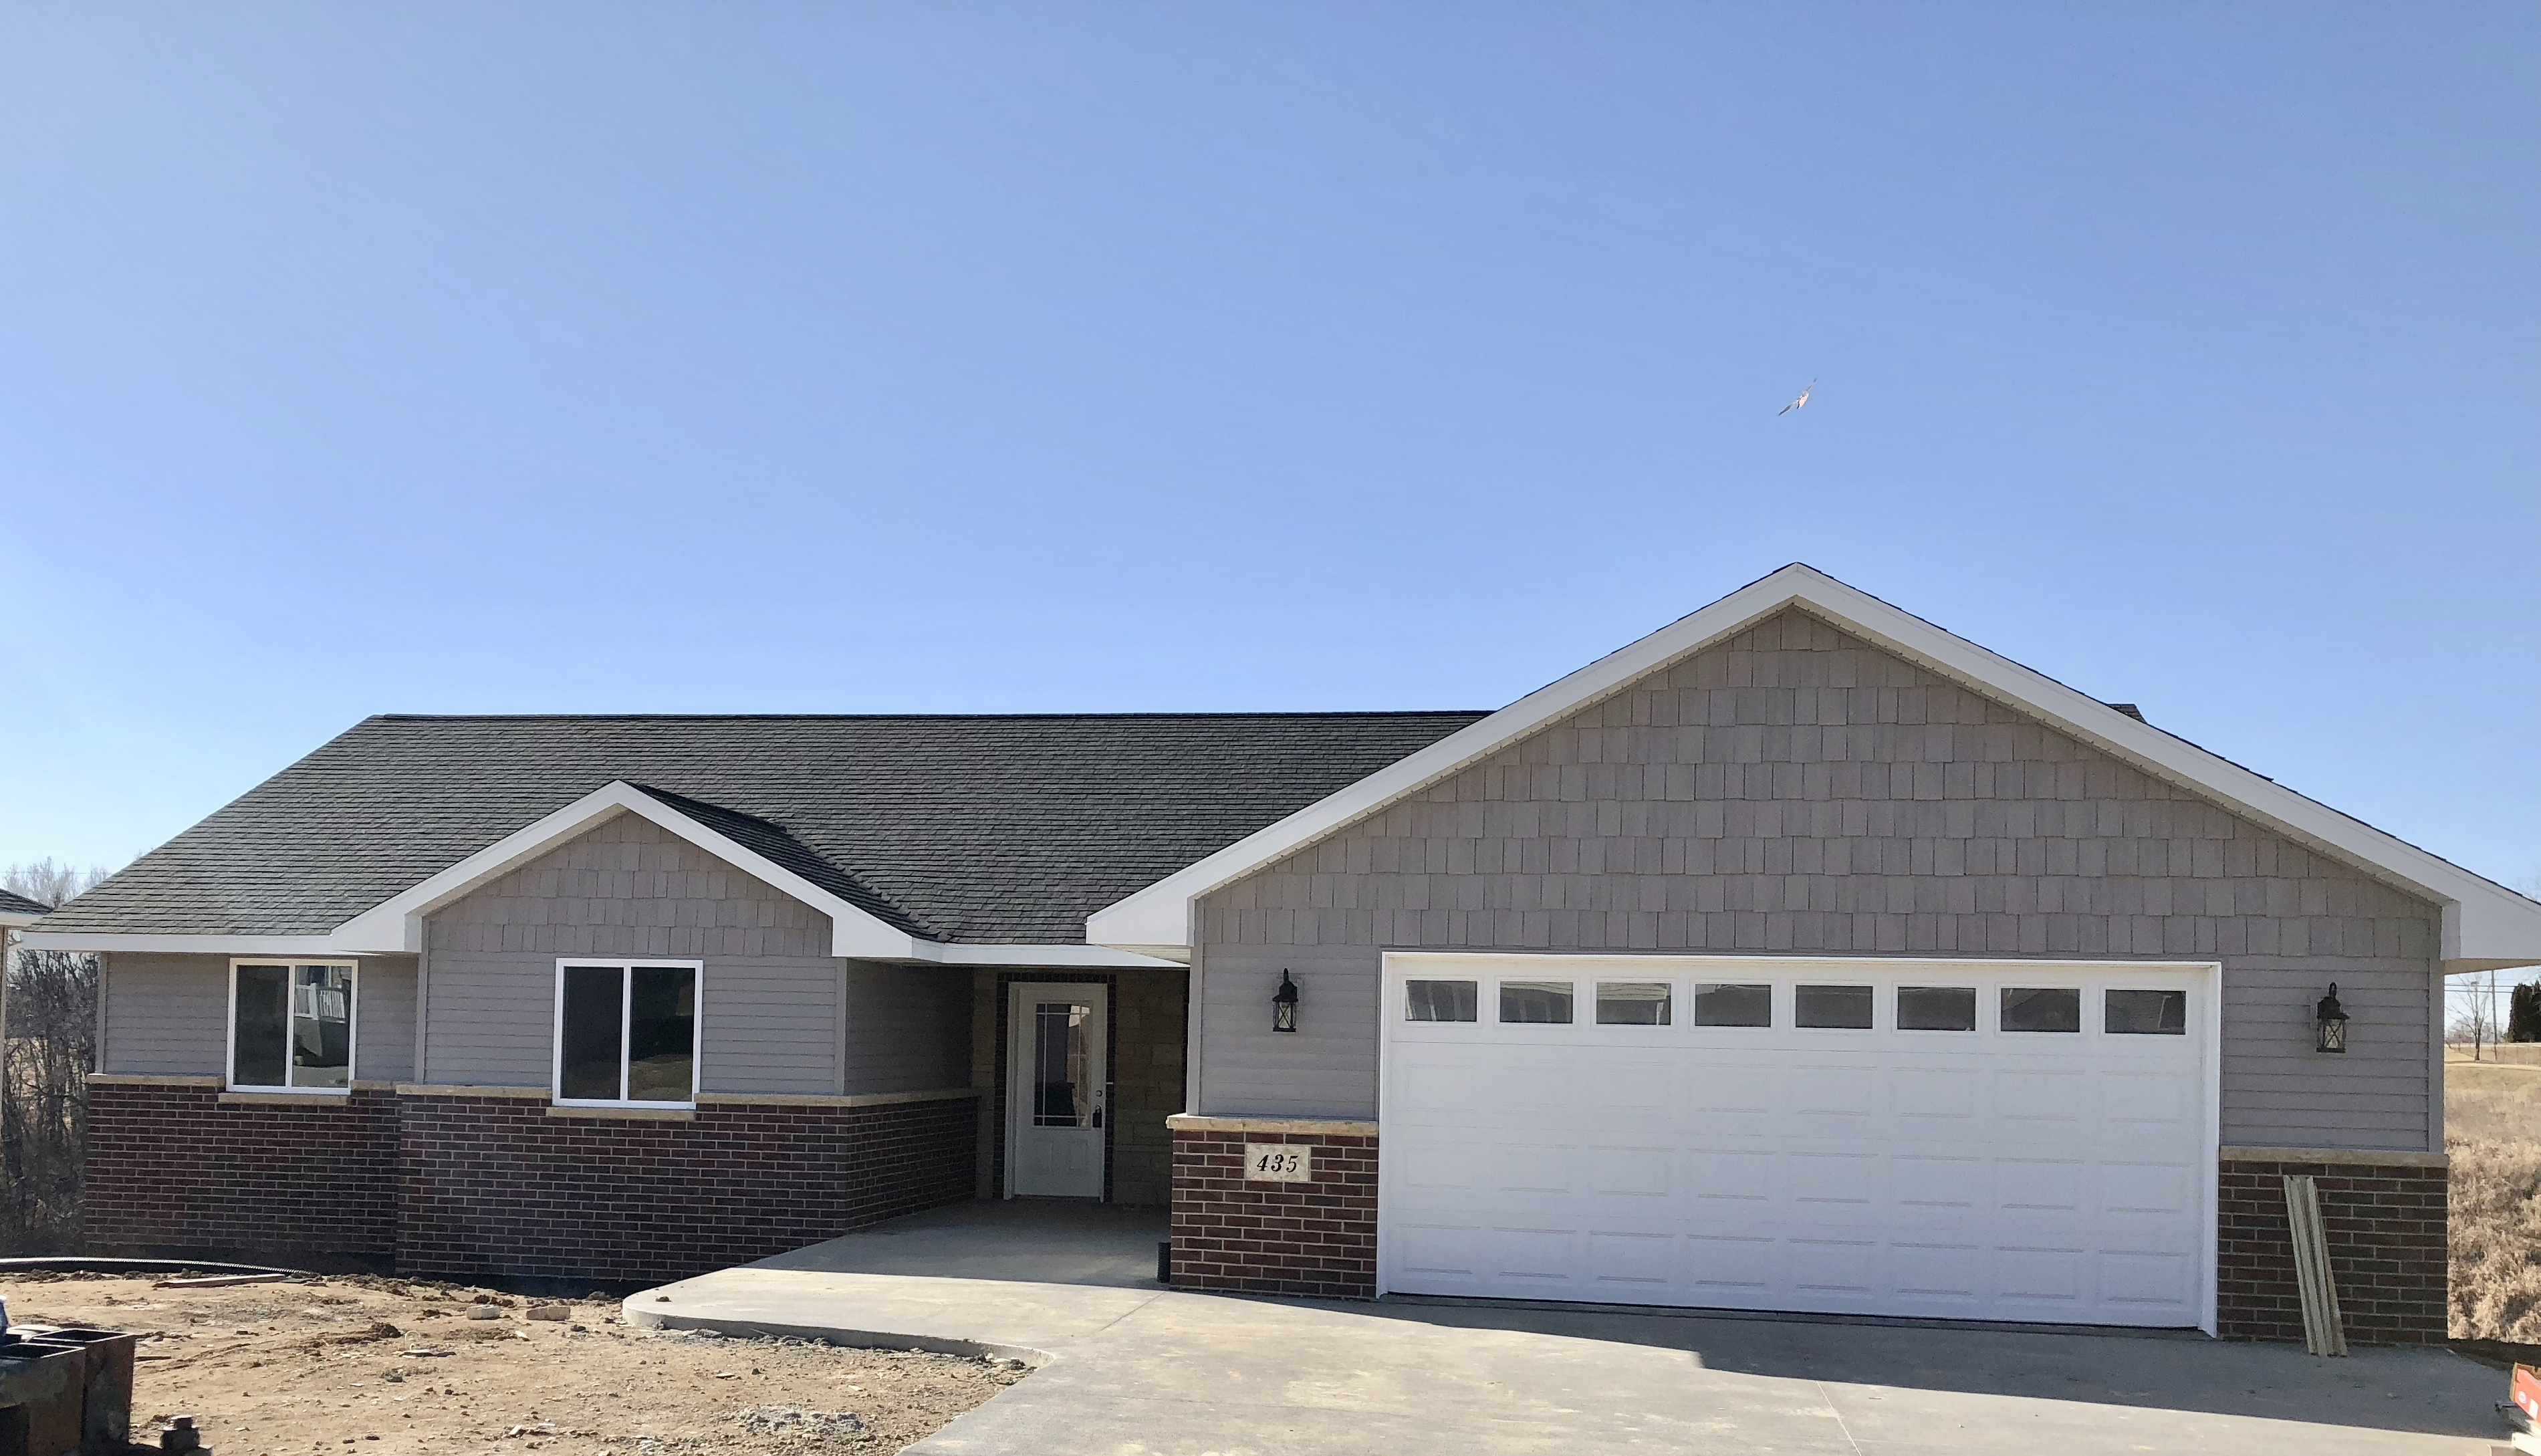 OPEN HOUSE| SUNDAY, March 11th ~ 11:00-12:00PM  || 435 N. Blake Ave., East Dubuque, IL